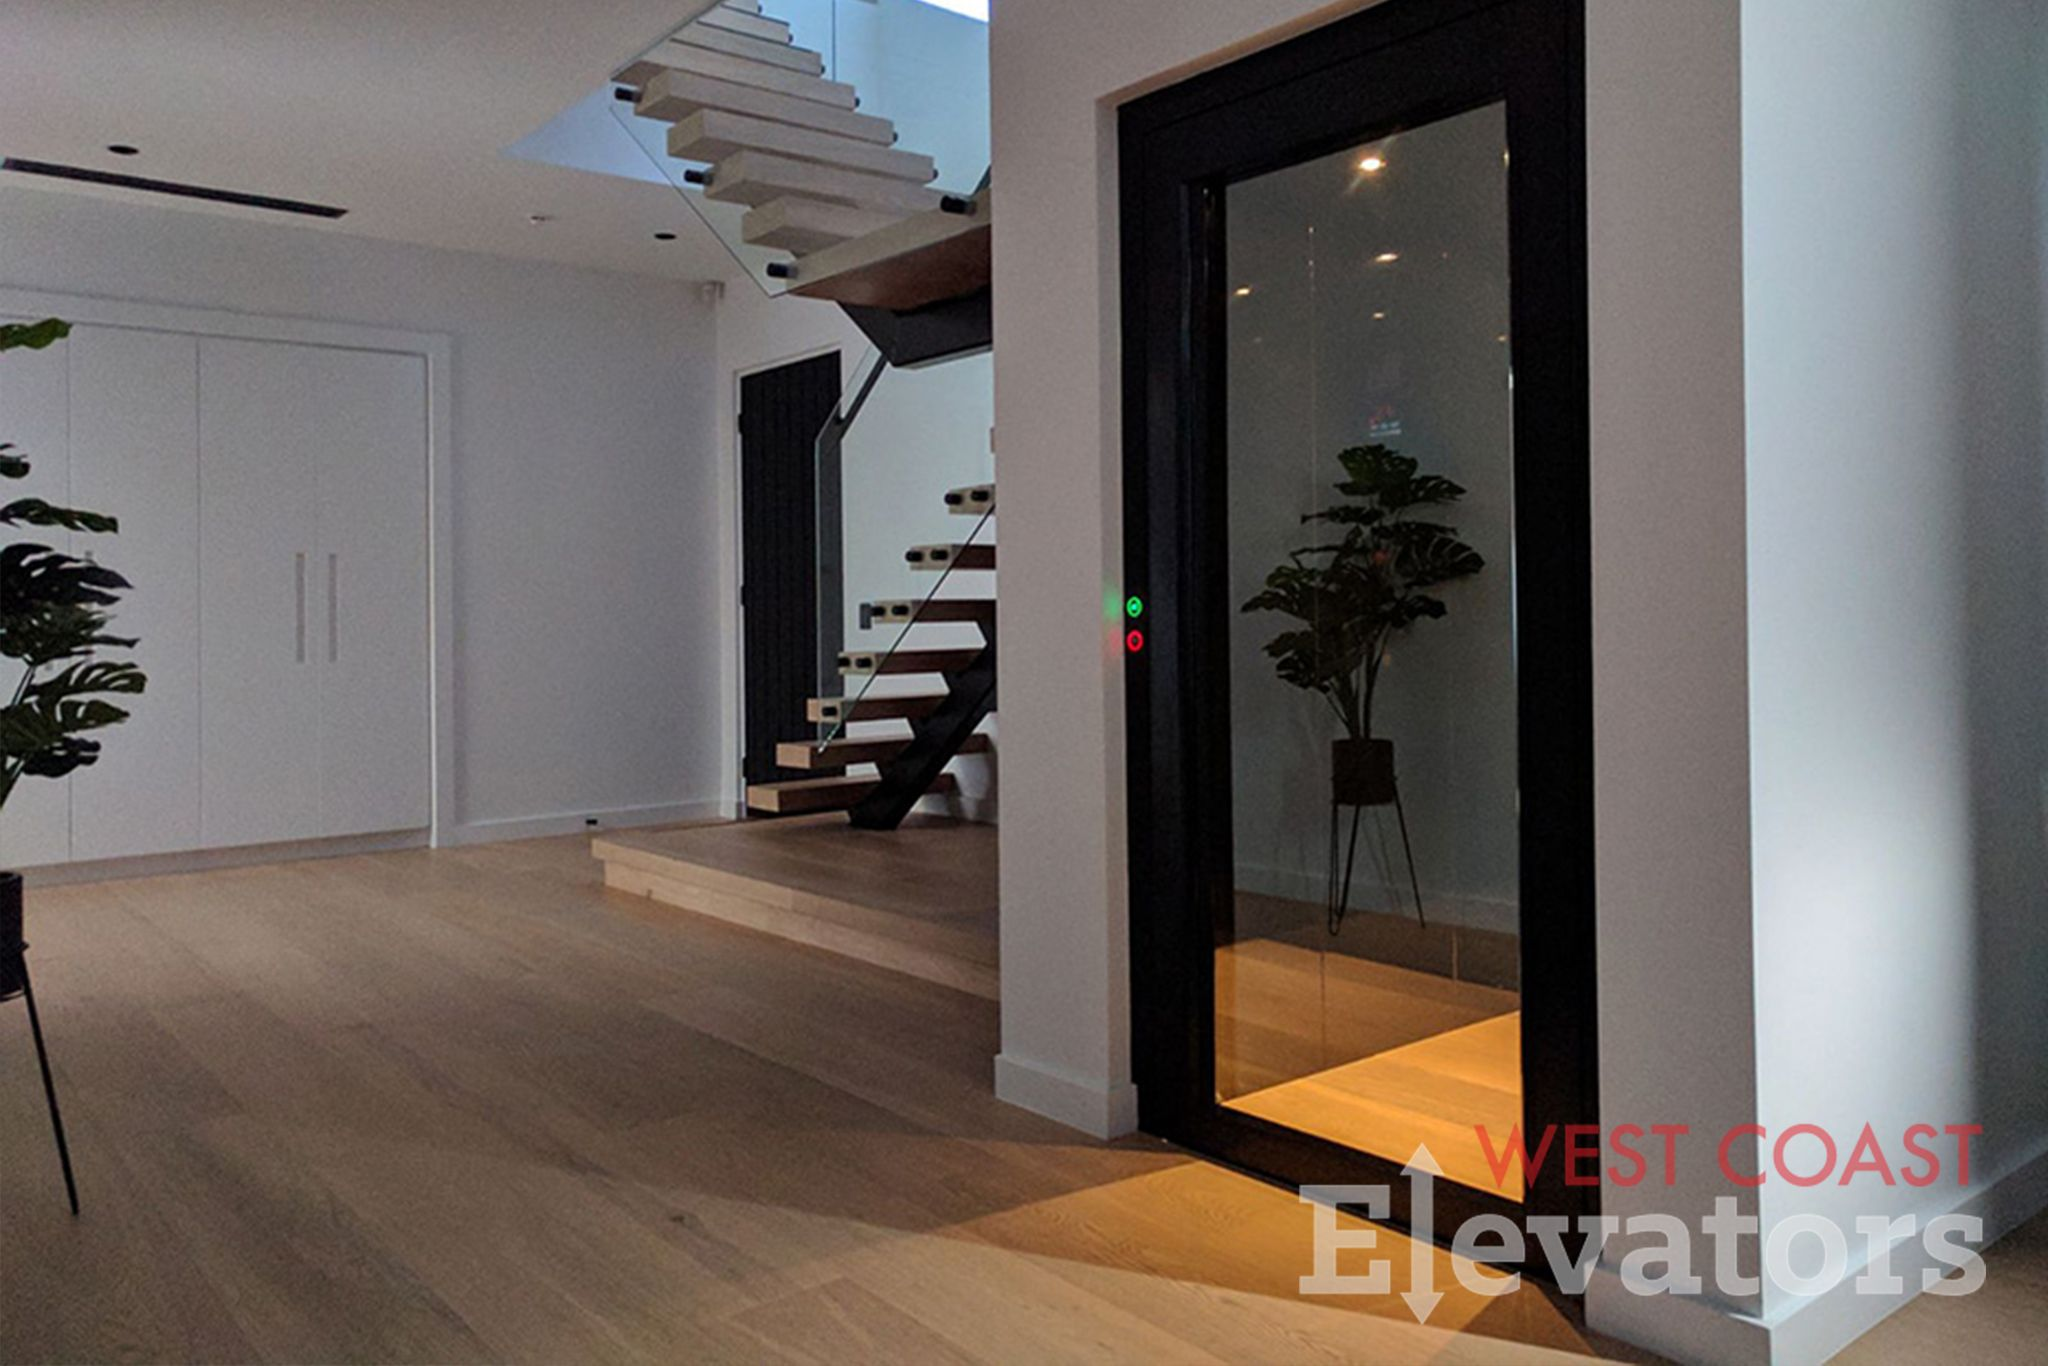 How Much Does It Cost To Install A Lift In A House West Coast Elevators News House Lift Elevator Design House